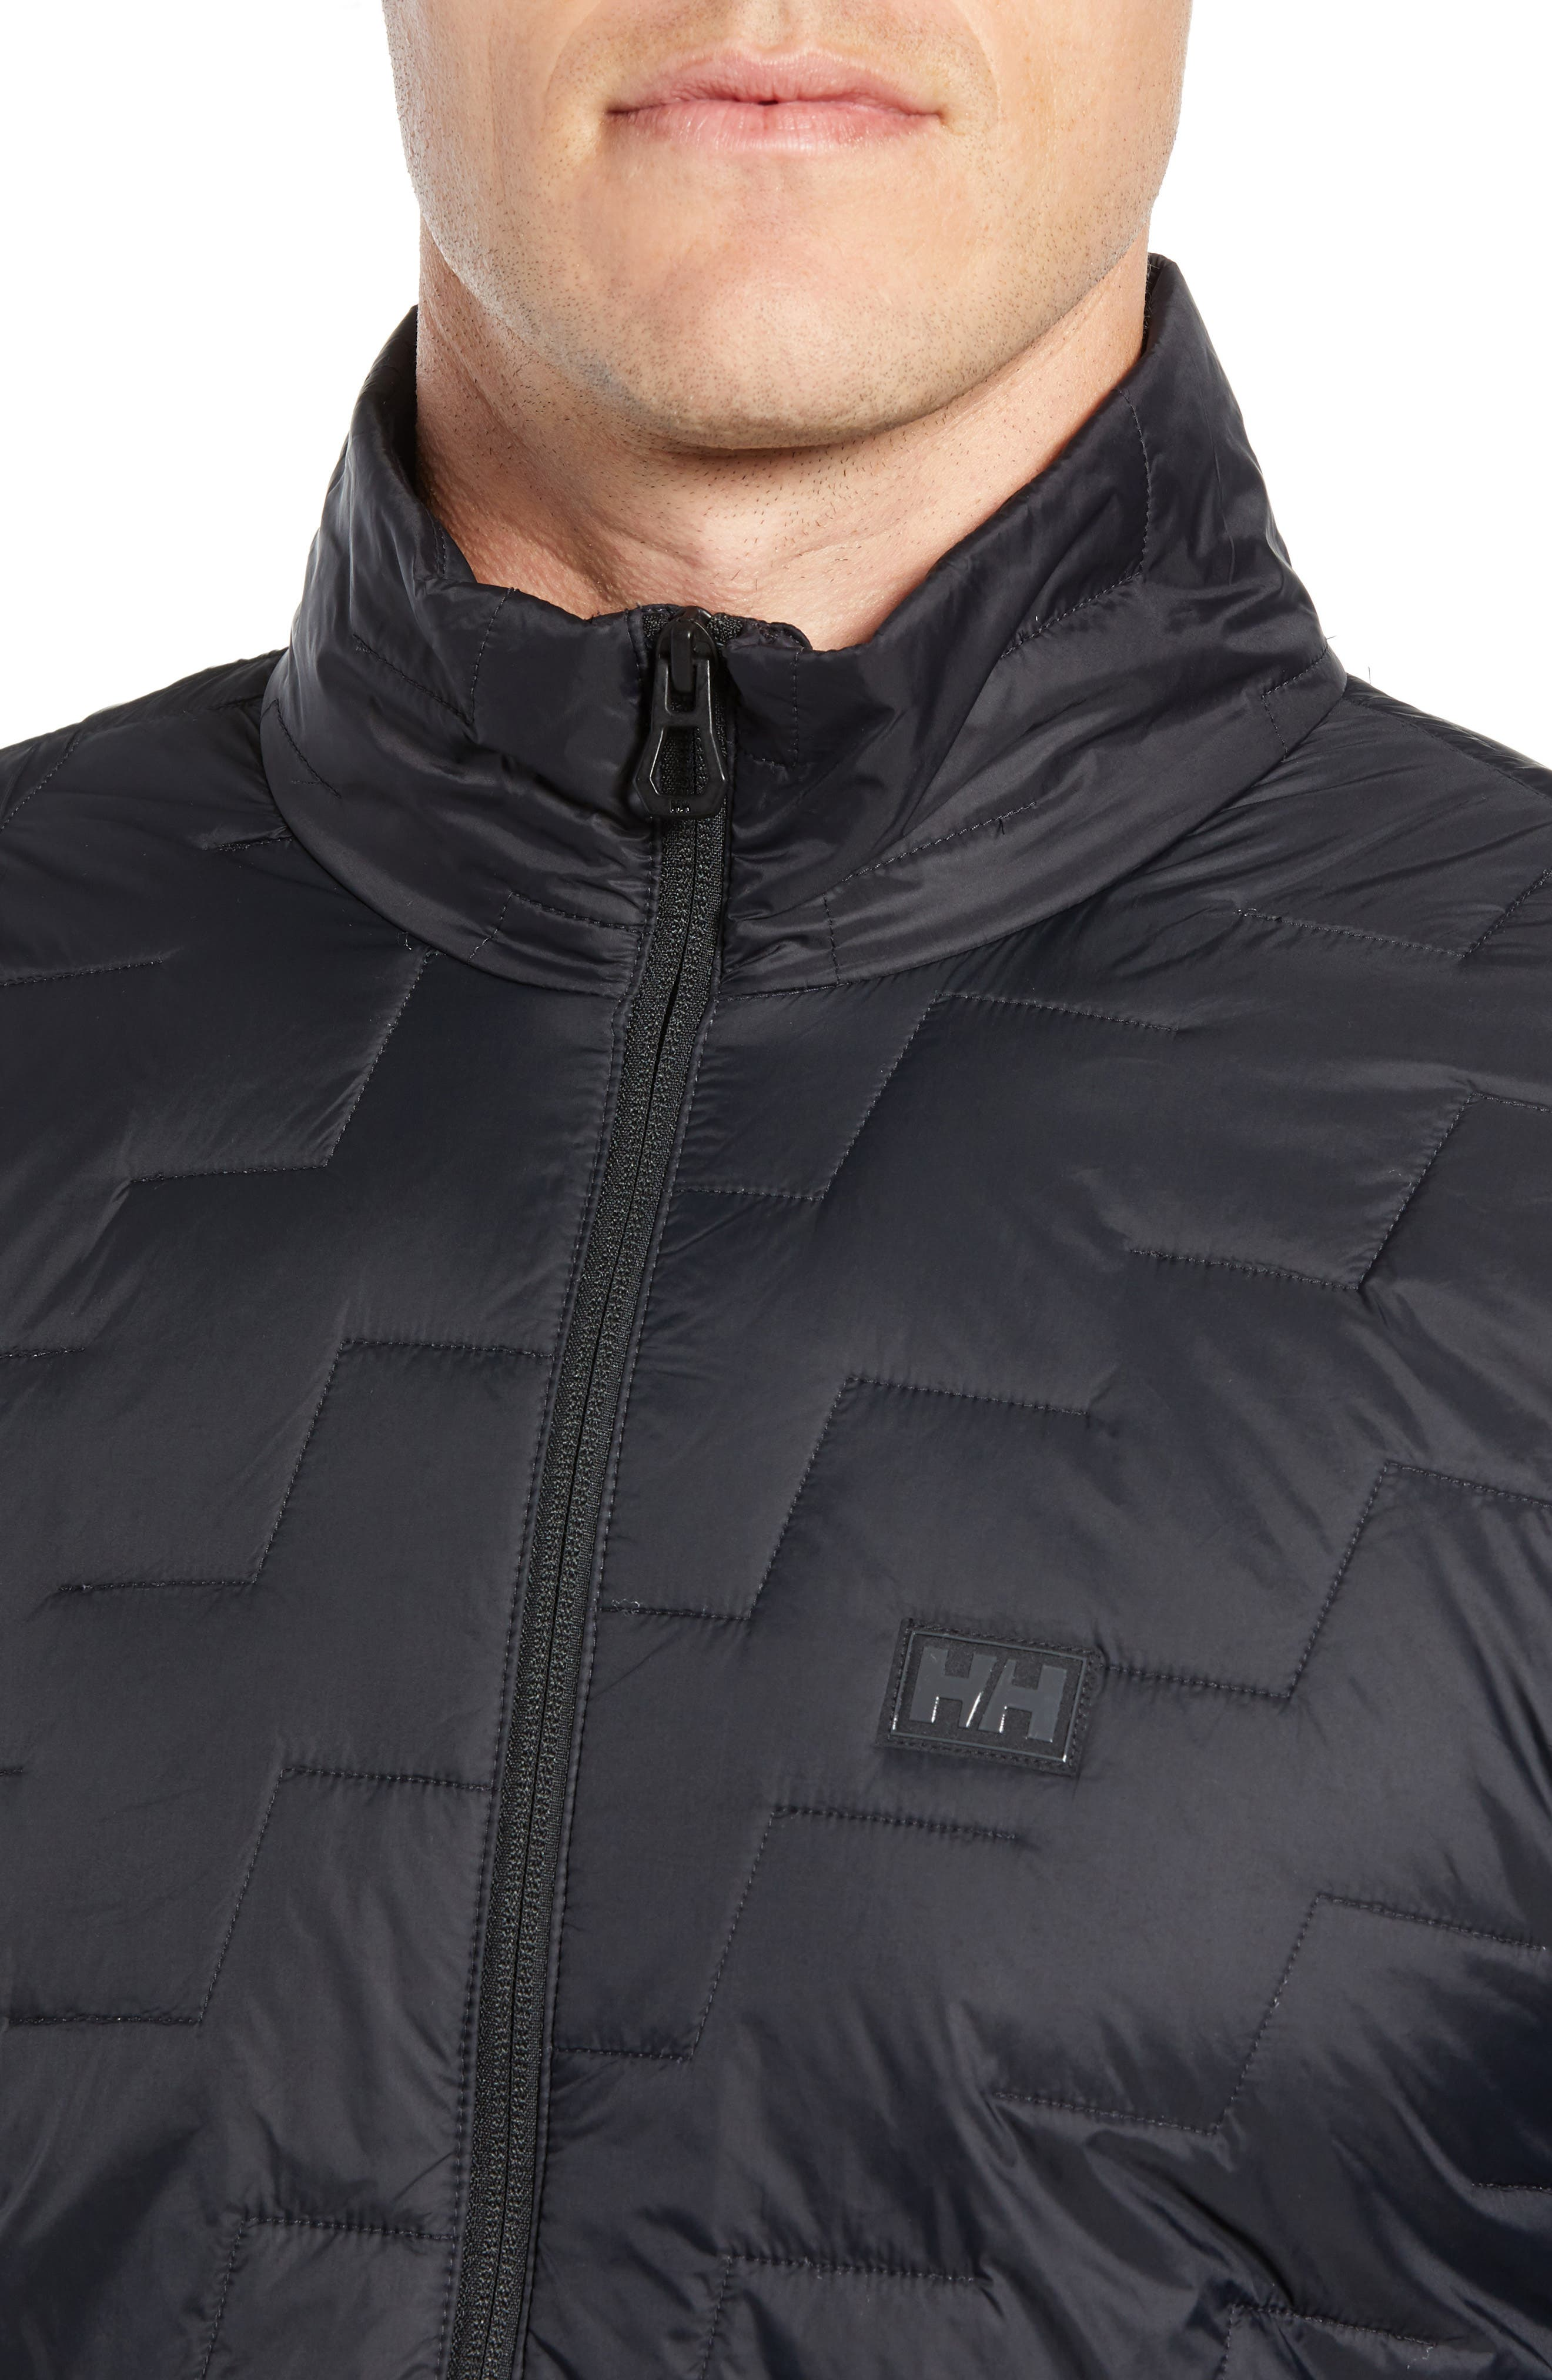 Lifaloft Insulator Jacket,                             Alternate thumbnail 4, color,                             BLACK MATTE